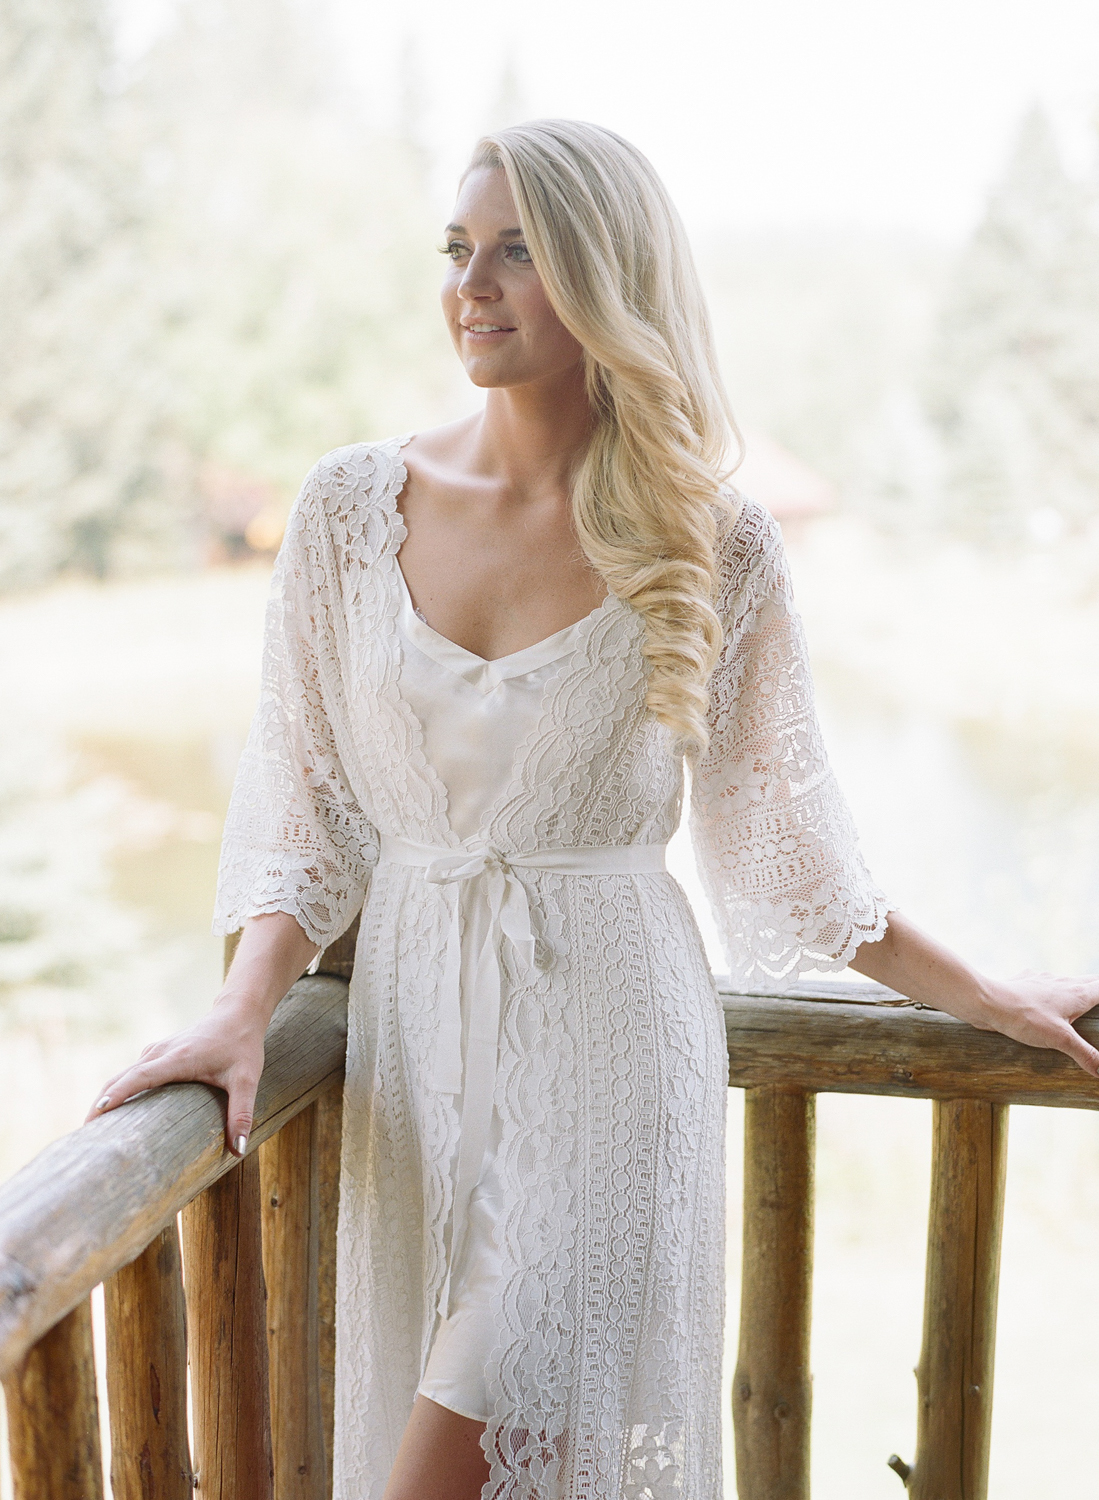 Kaitlin, the bride, stands in a lace robe before the wedding in Whitefish, Montana; Sylvie Gil Photography